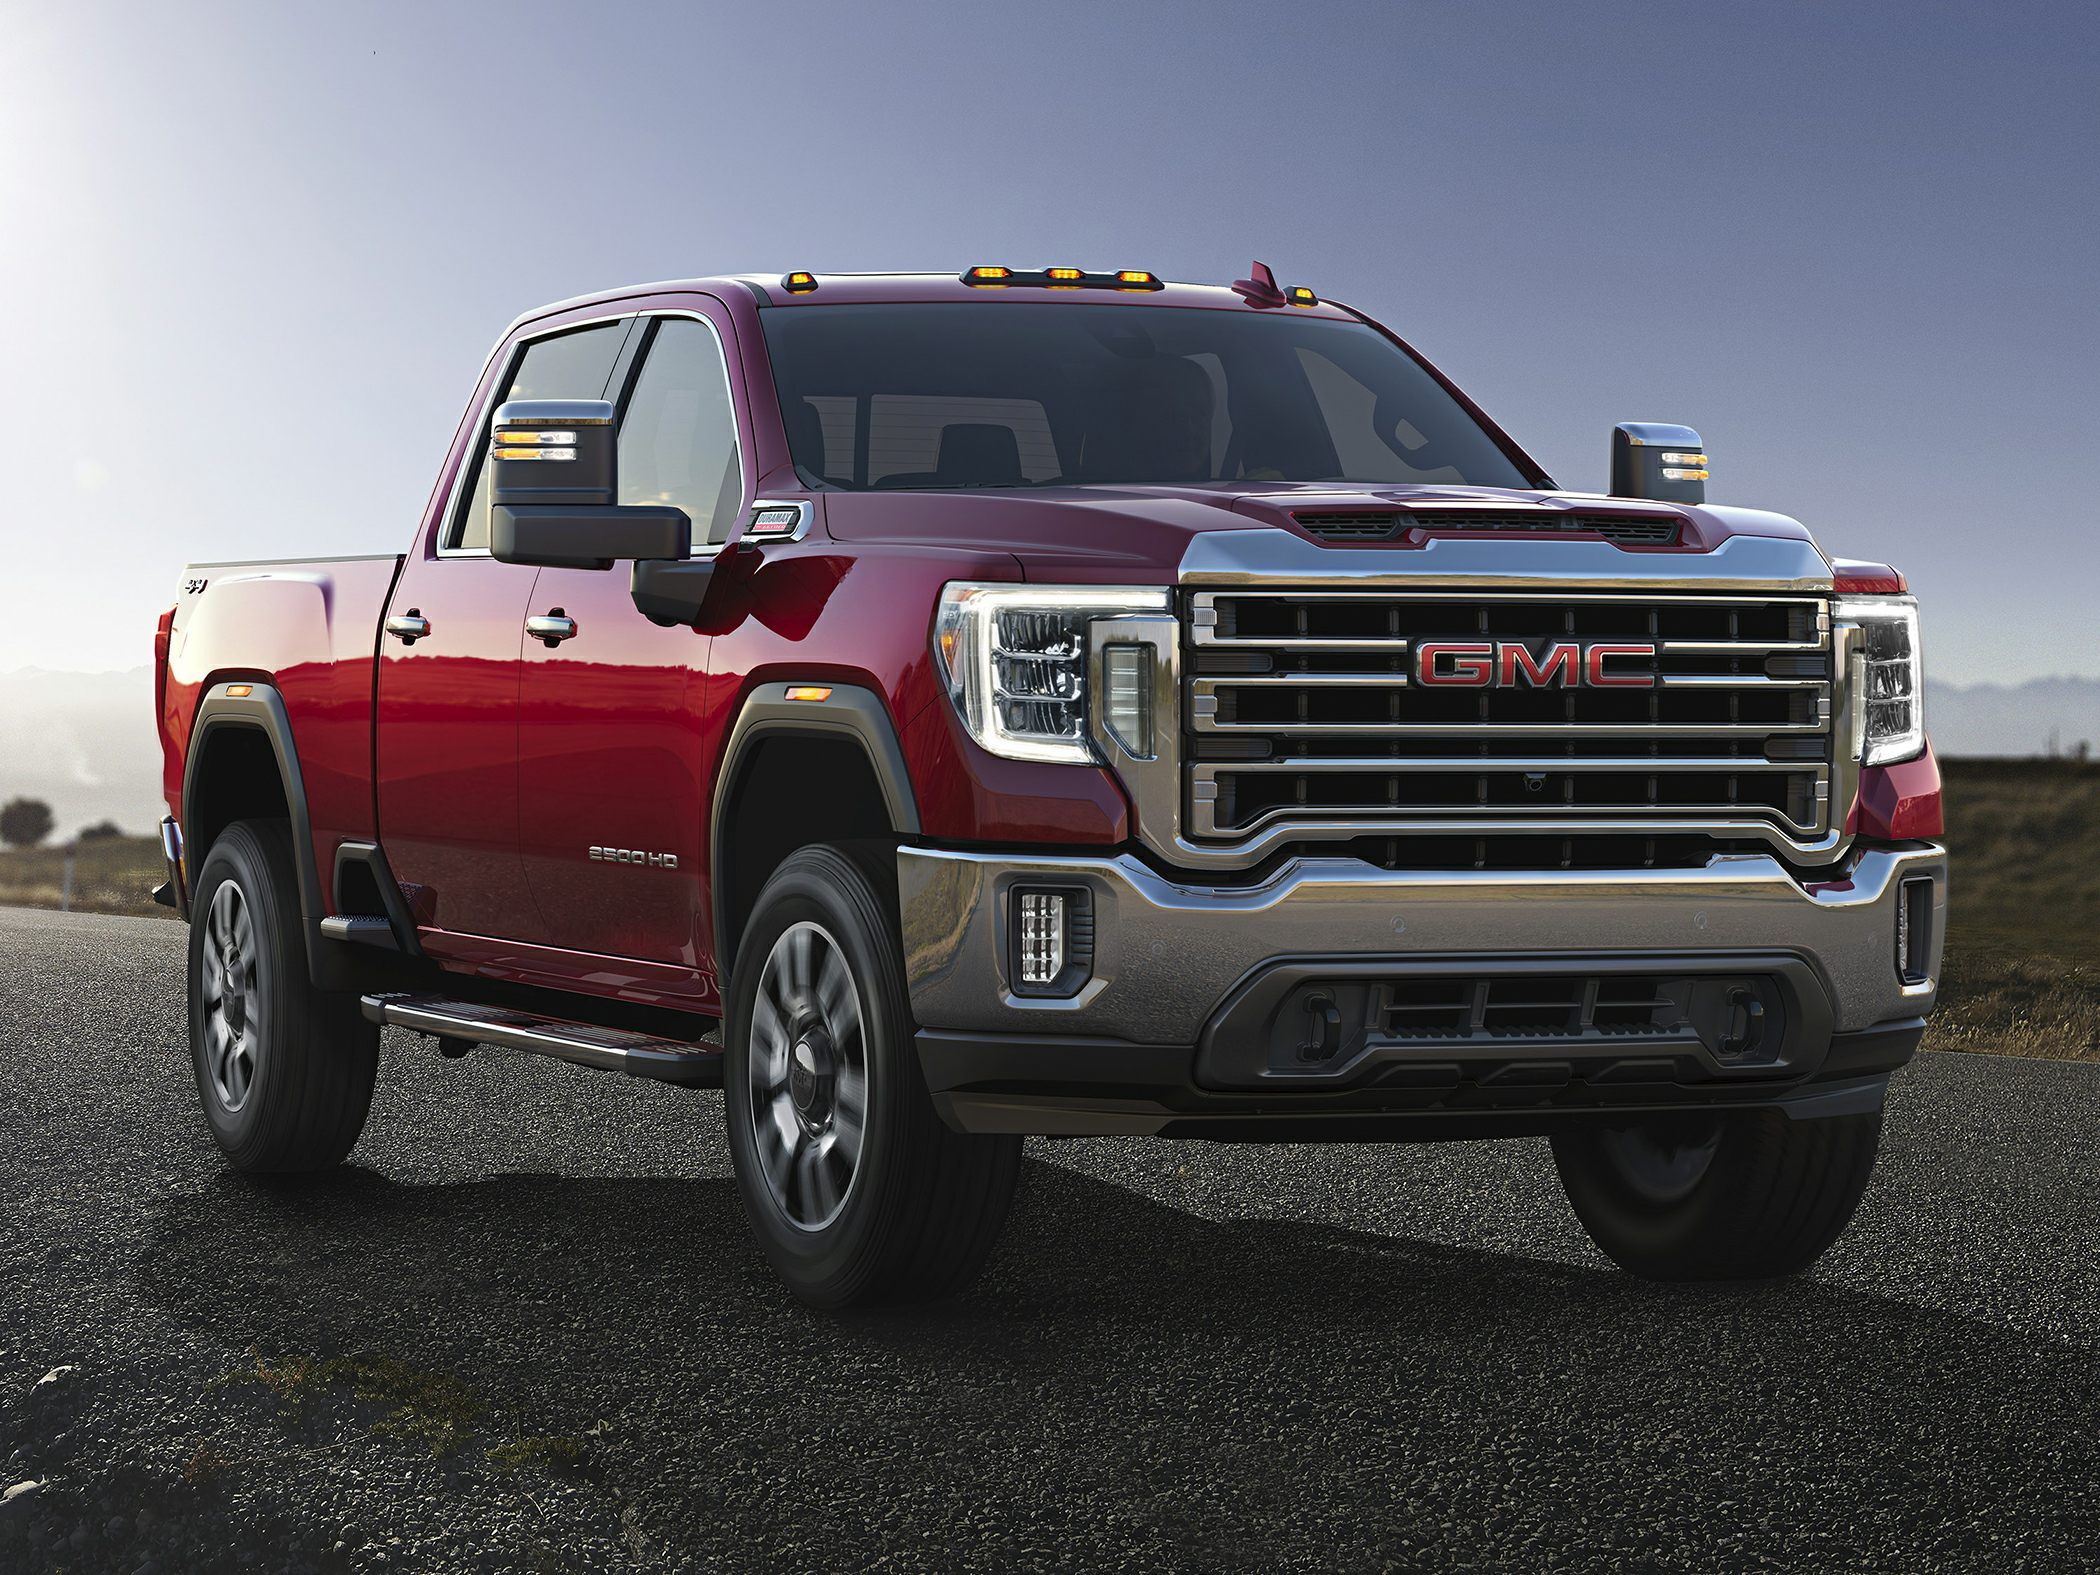 2020 Gmc Sierra 2500Hd Slt 4X2 Crew Cab 6.75 Ft. Box 158.9 In. Wb Specs And  Prices 2020 Gmc Sierra 2500Hd Dimensions, Engine Options, Horsepower